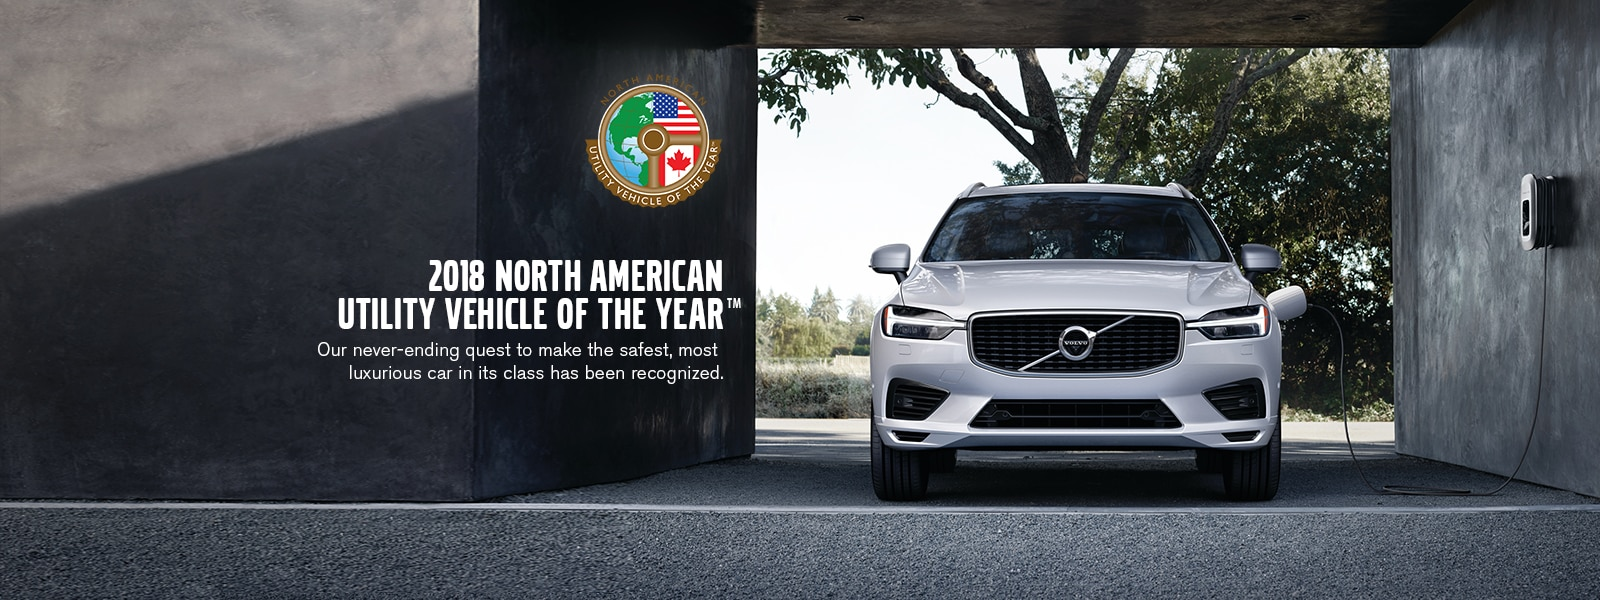 atlanta fwd luxury premier volvo motors at used serving detail